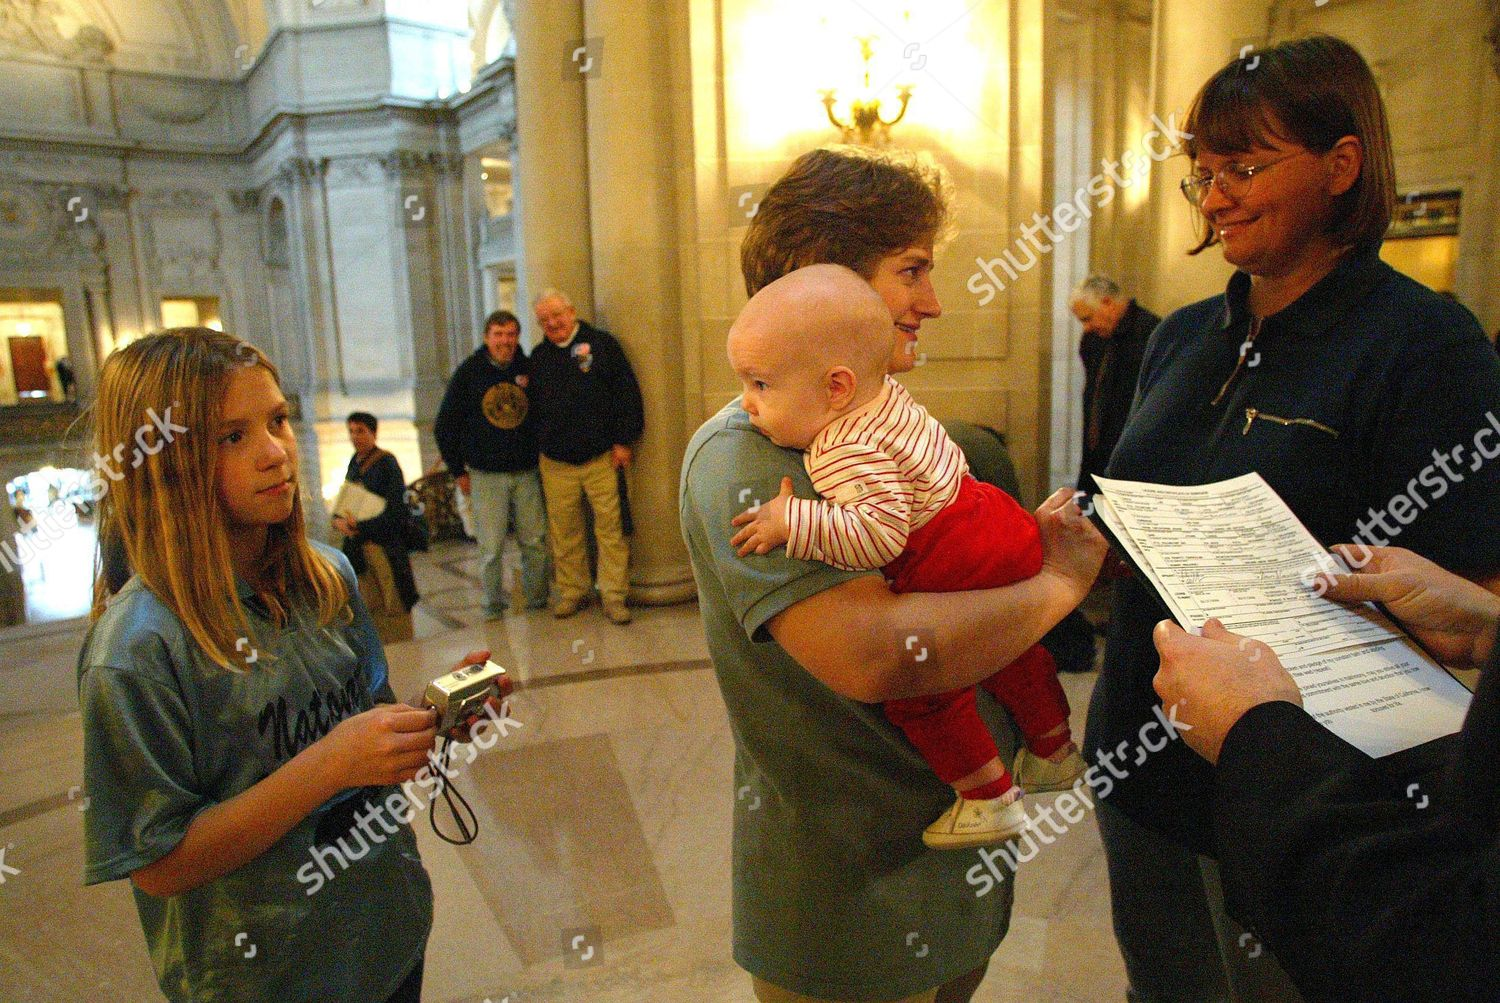 Stock photo of Usa Gay Marriage Licenses - Feb 2004